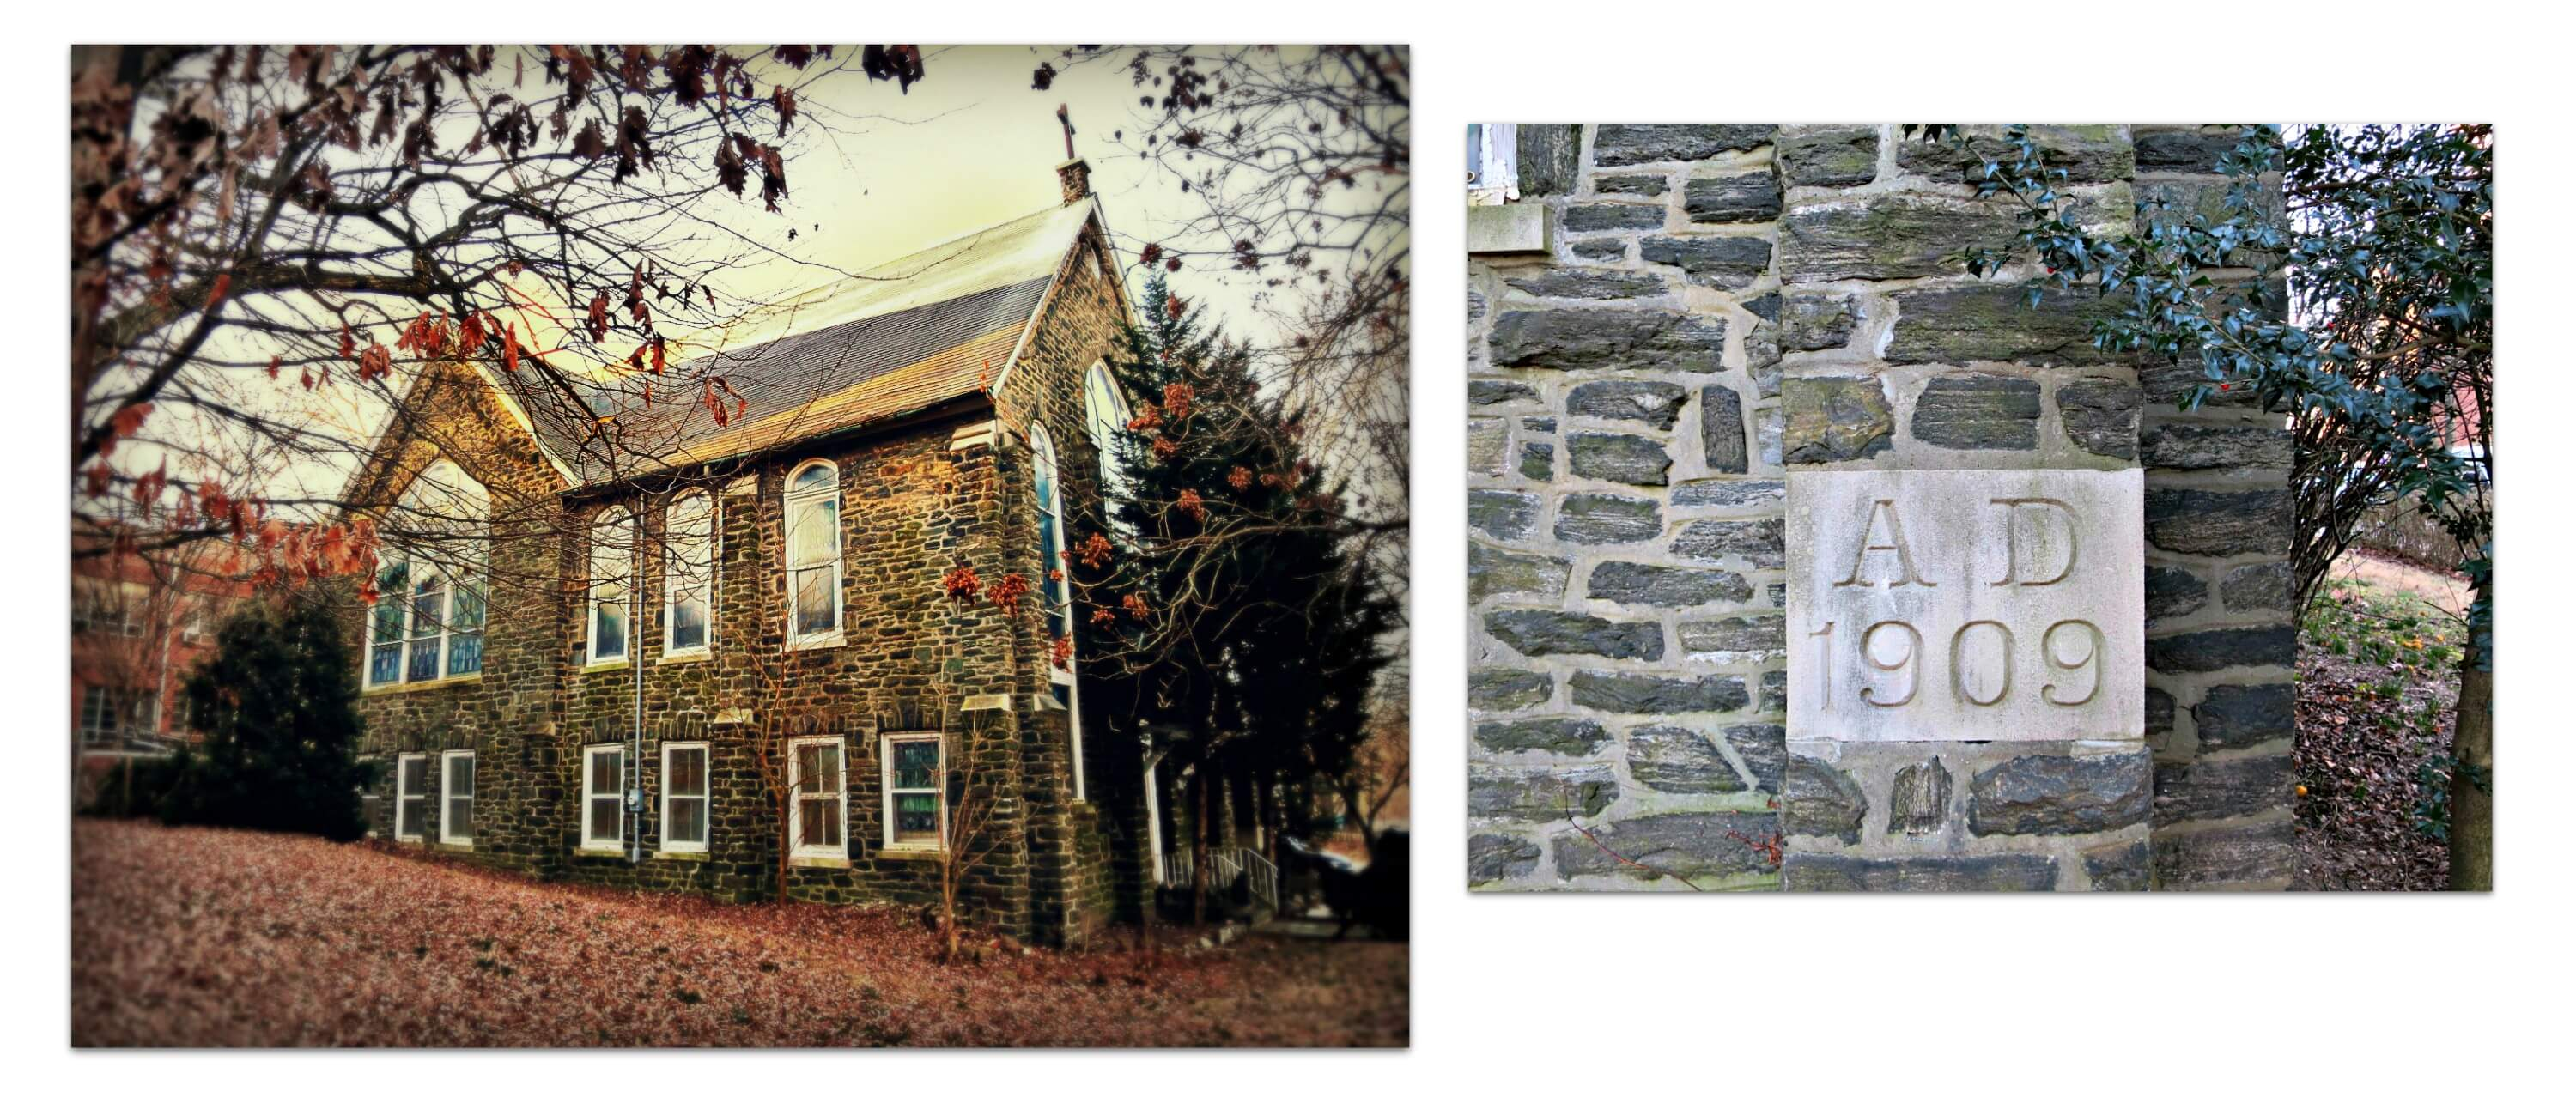 EastFallsLocal collage redeemer church keystone